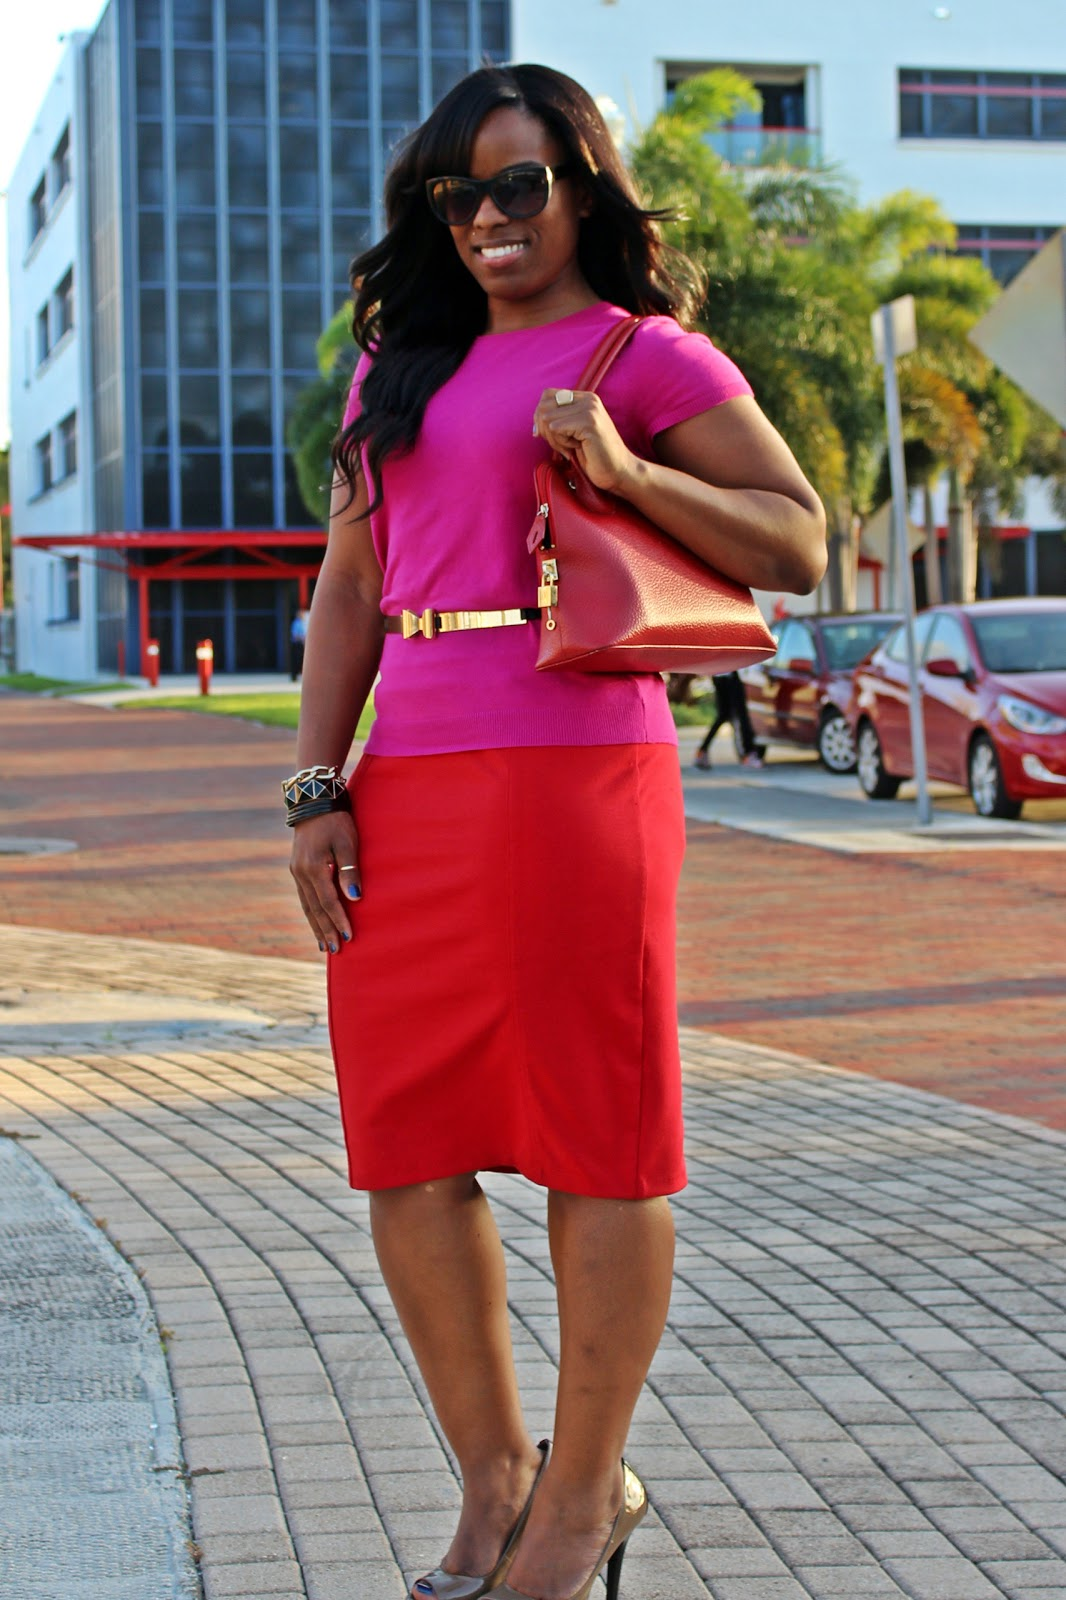 http://1.bp.blogspot.com/-5gjNWlgutGo/UH7MdAD24eI/AAAAAAAADYc/6D7Bpr0y-qQ/s1600/Red+and+pink+color+blocking,+gold+metal+bow+belt,+pink+short+sleeve+sweater,+red+knit+pencil+skirt,+dark+khaki+Jessica+simpson+shoes.JPG